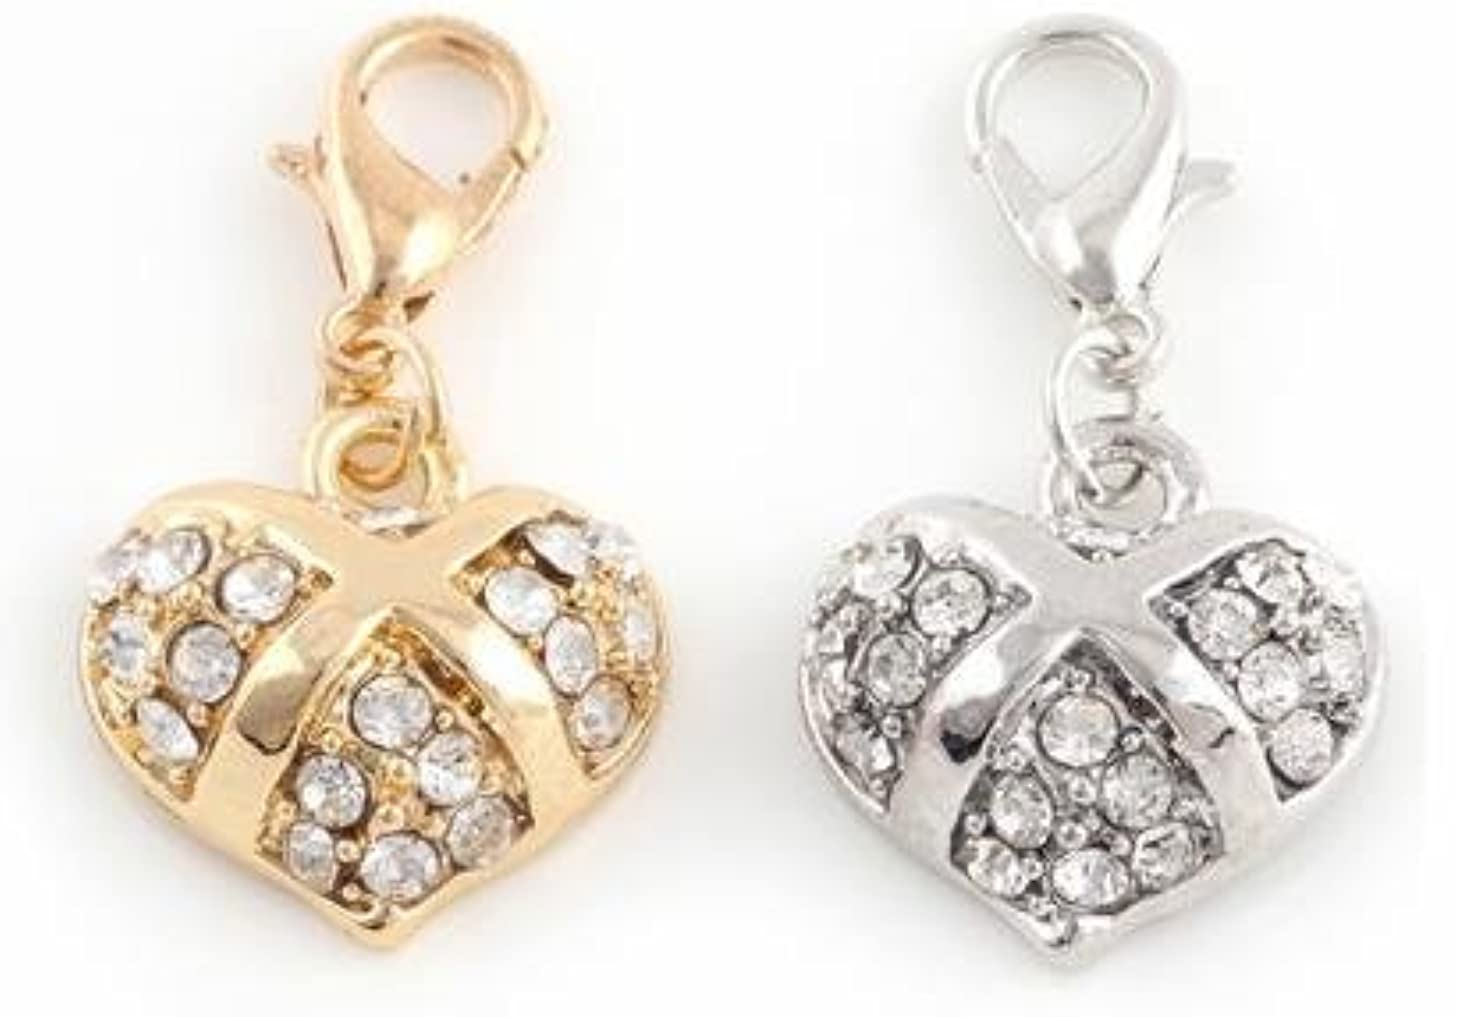 Beautiful Gold & Silver Heart Charms with Rhinestones Bling Design Embellish Your Purse, Also for DIY Arts & Craft Charm, Pendant, Backpack, Keychain, KandyCharmz 245